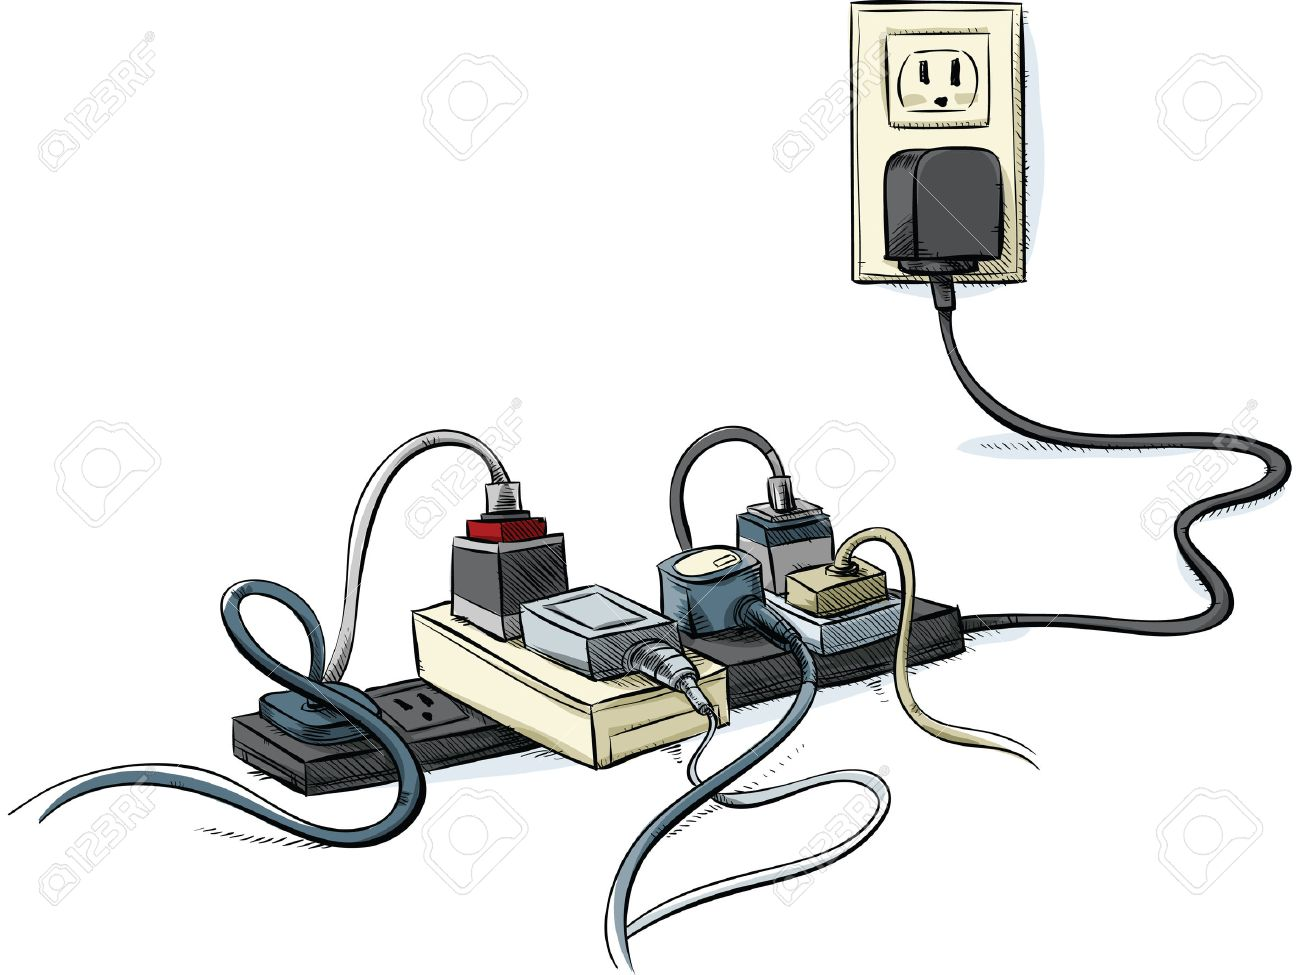 Cartoon Power Cords And Bars Combined In A Tangle. Stock Photo ...